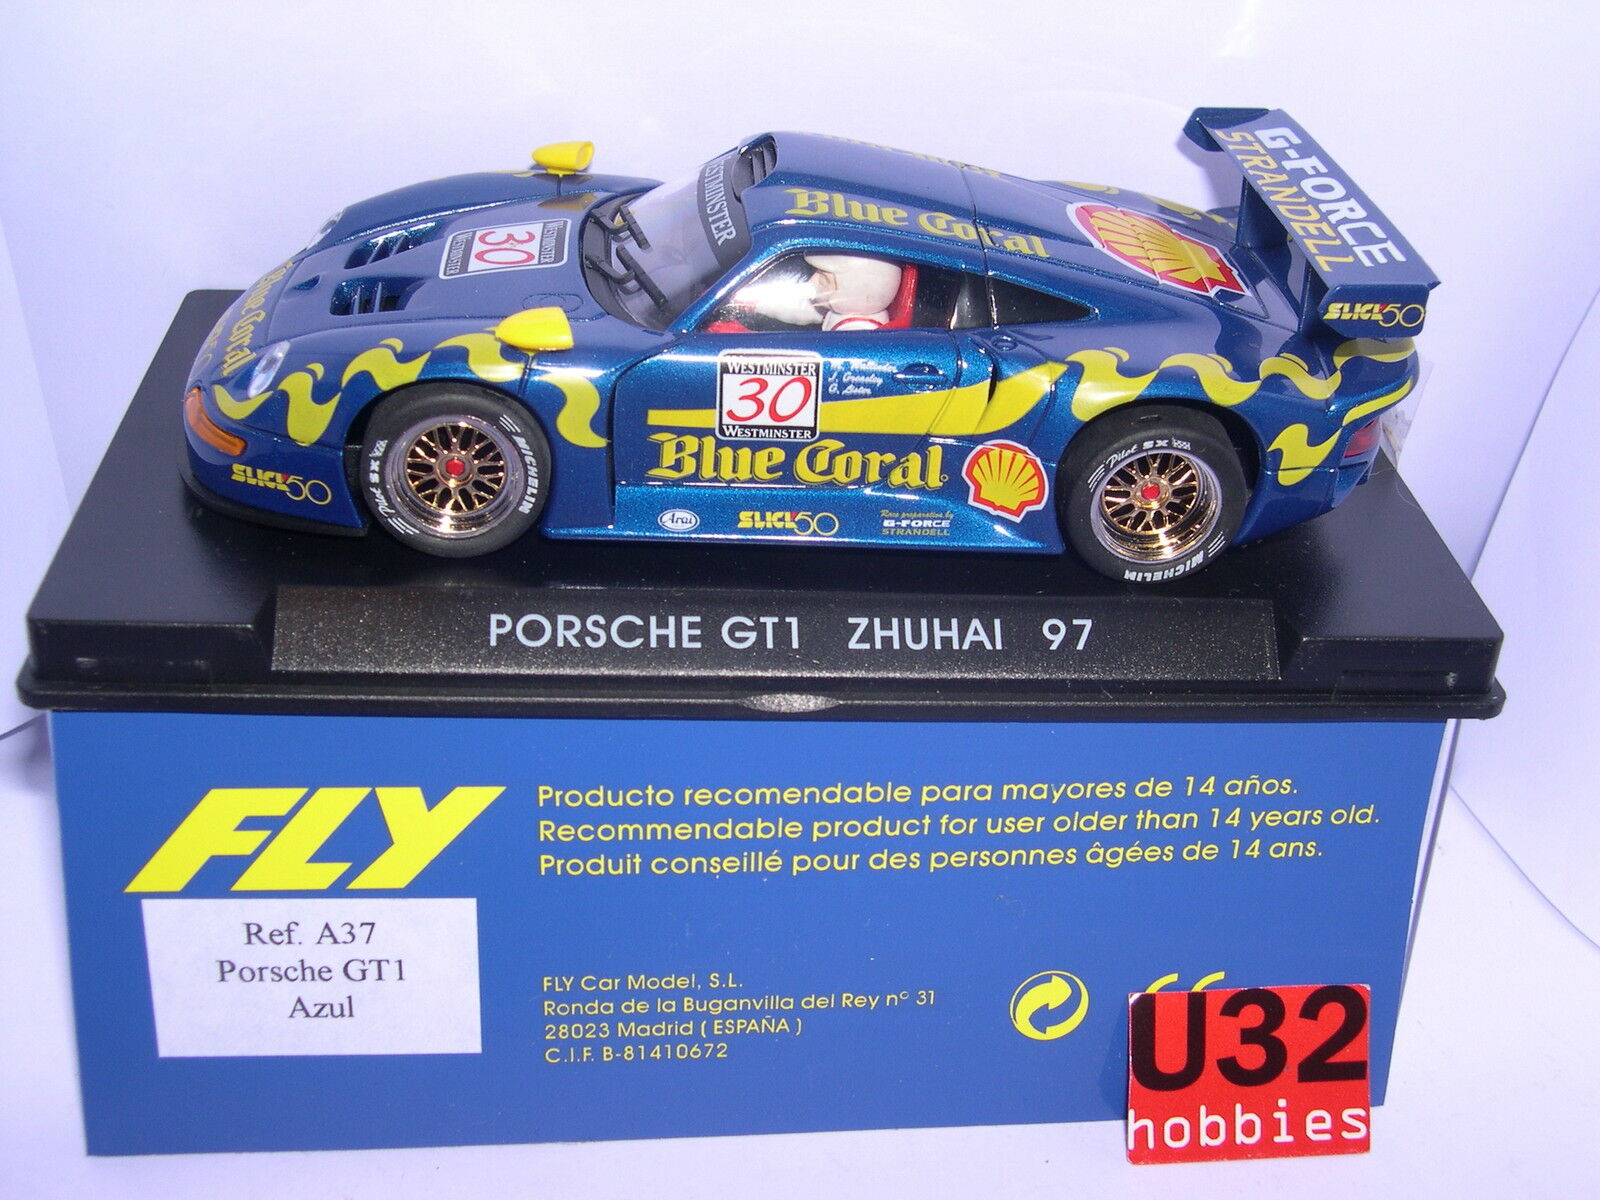 FLY A37 PORSCHE GT1 ZHUHAI 1997 blueE CORAL M.WELLINDER-J.GREALEY-G.LISTER MB